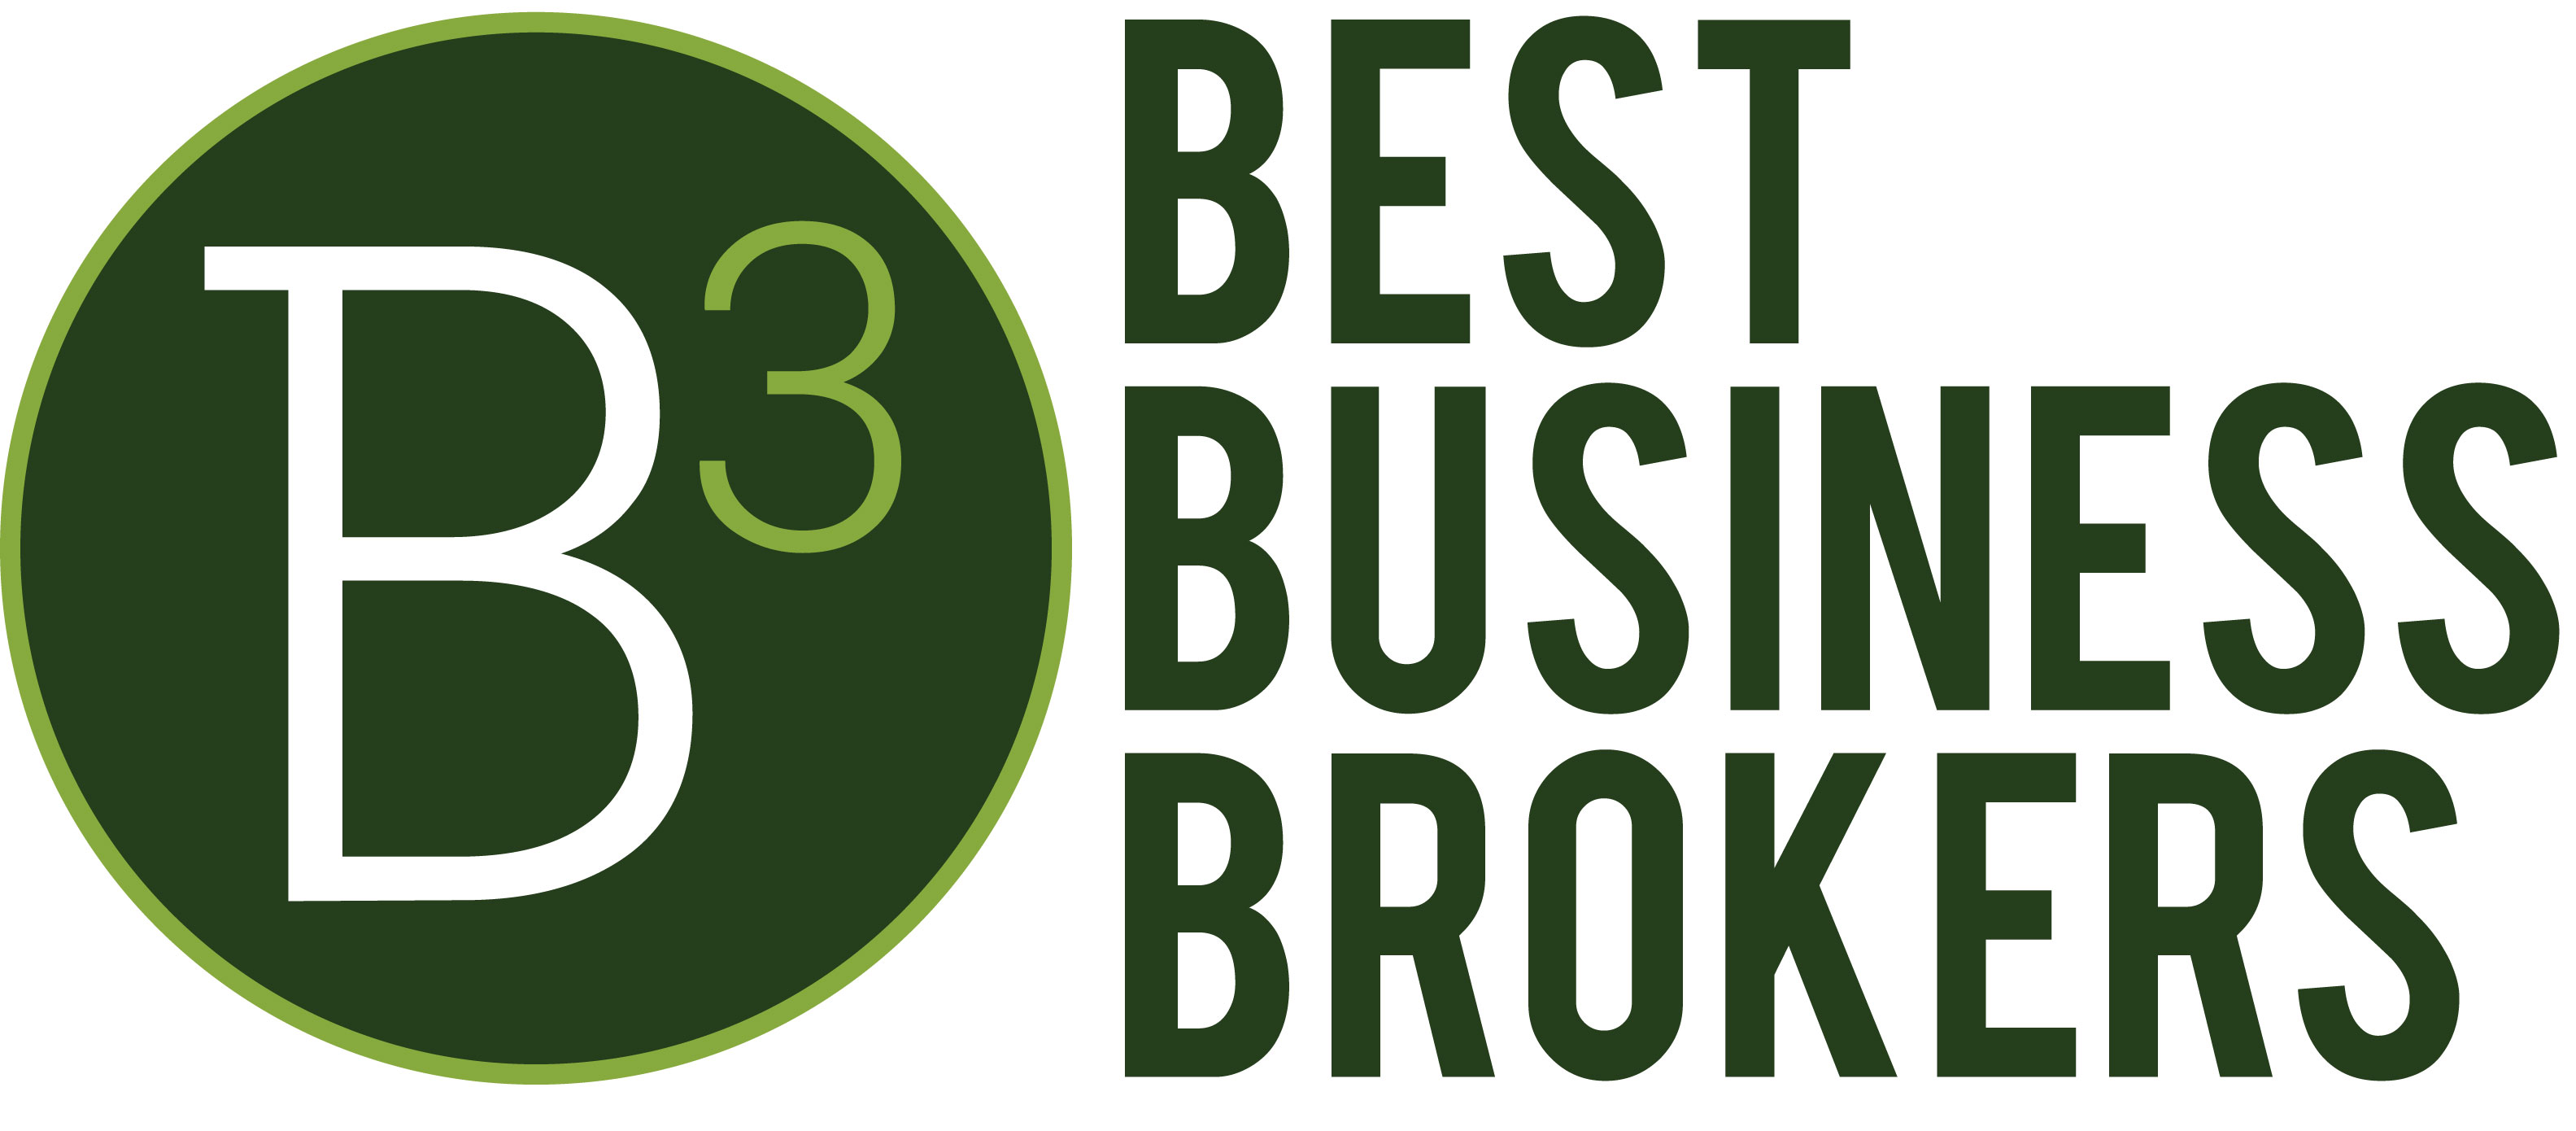 BestBusinessBrokers_Logo_WithText